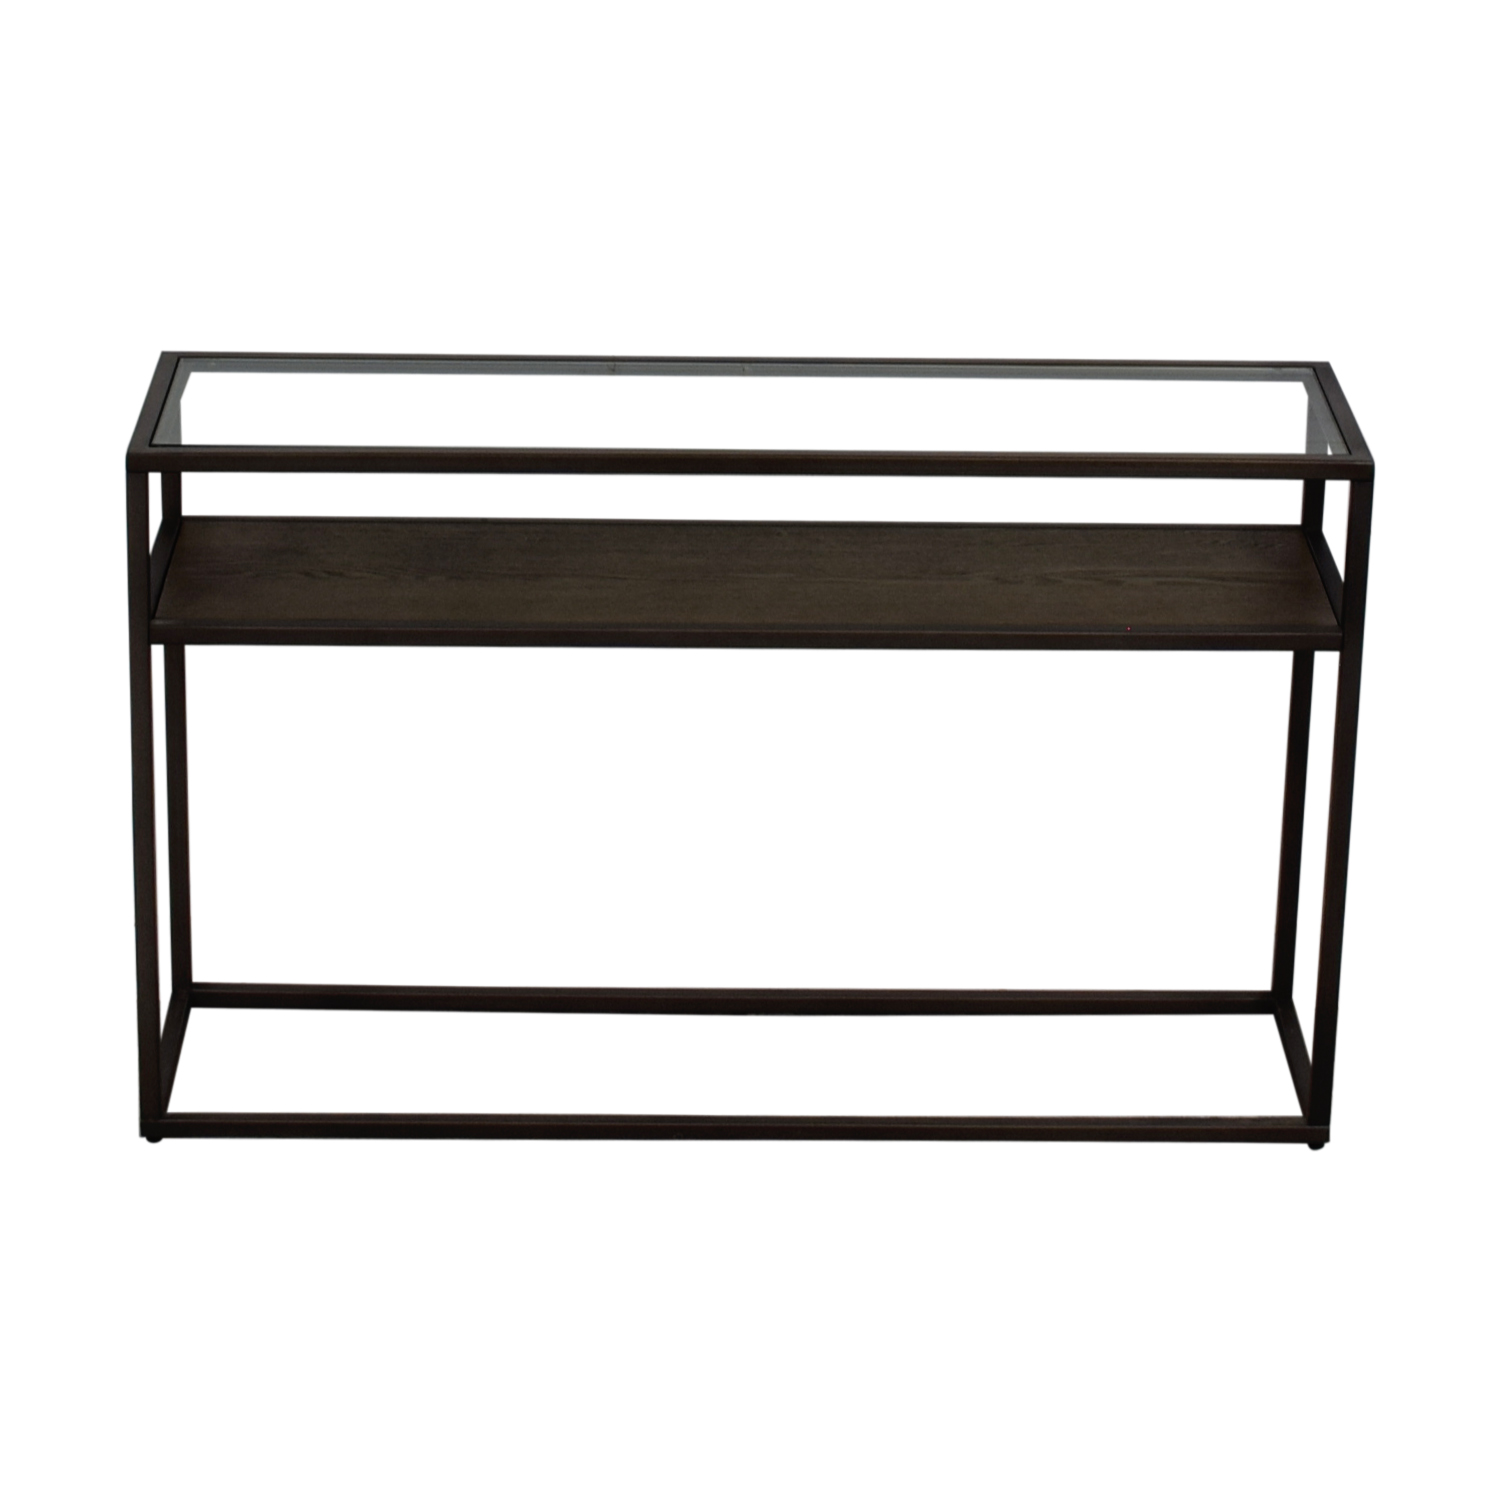 Crate & Barrel Switch Glass Wood and Metal Console Table sale